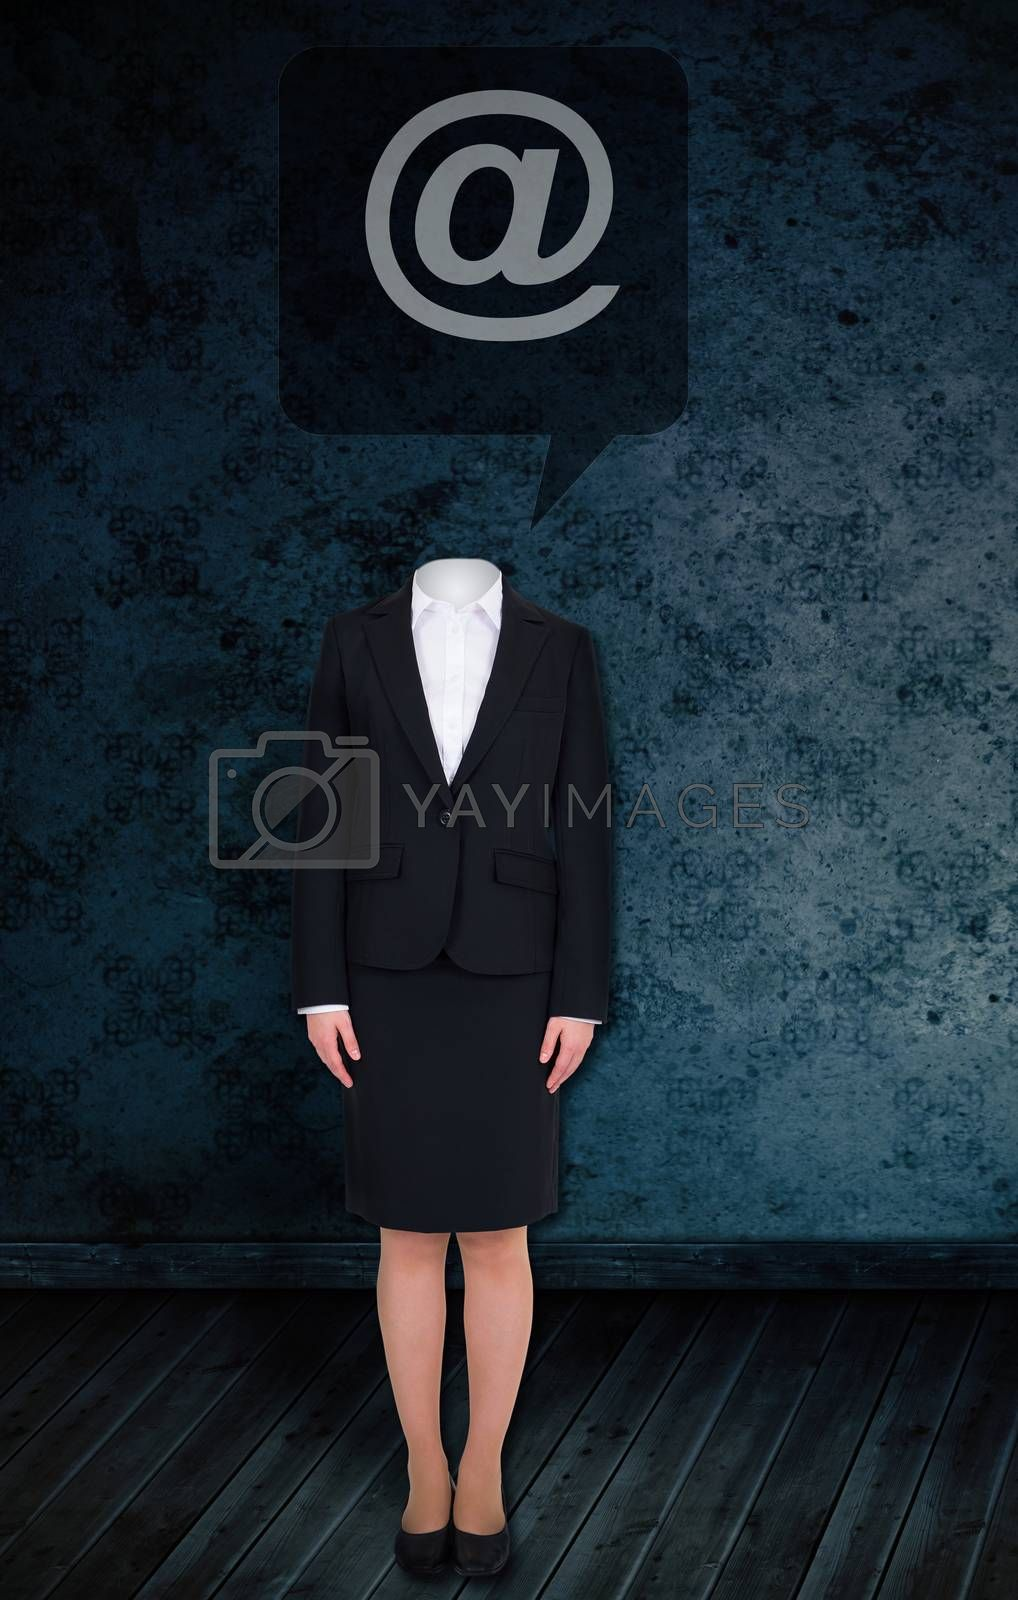 Composite image of headless businesswoman with at sign against dark grimy room